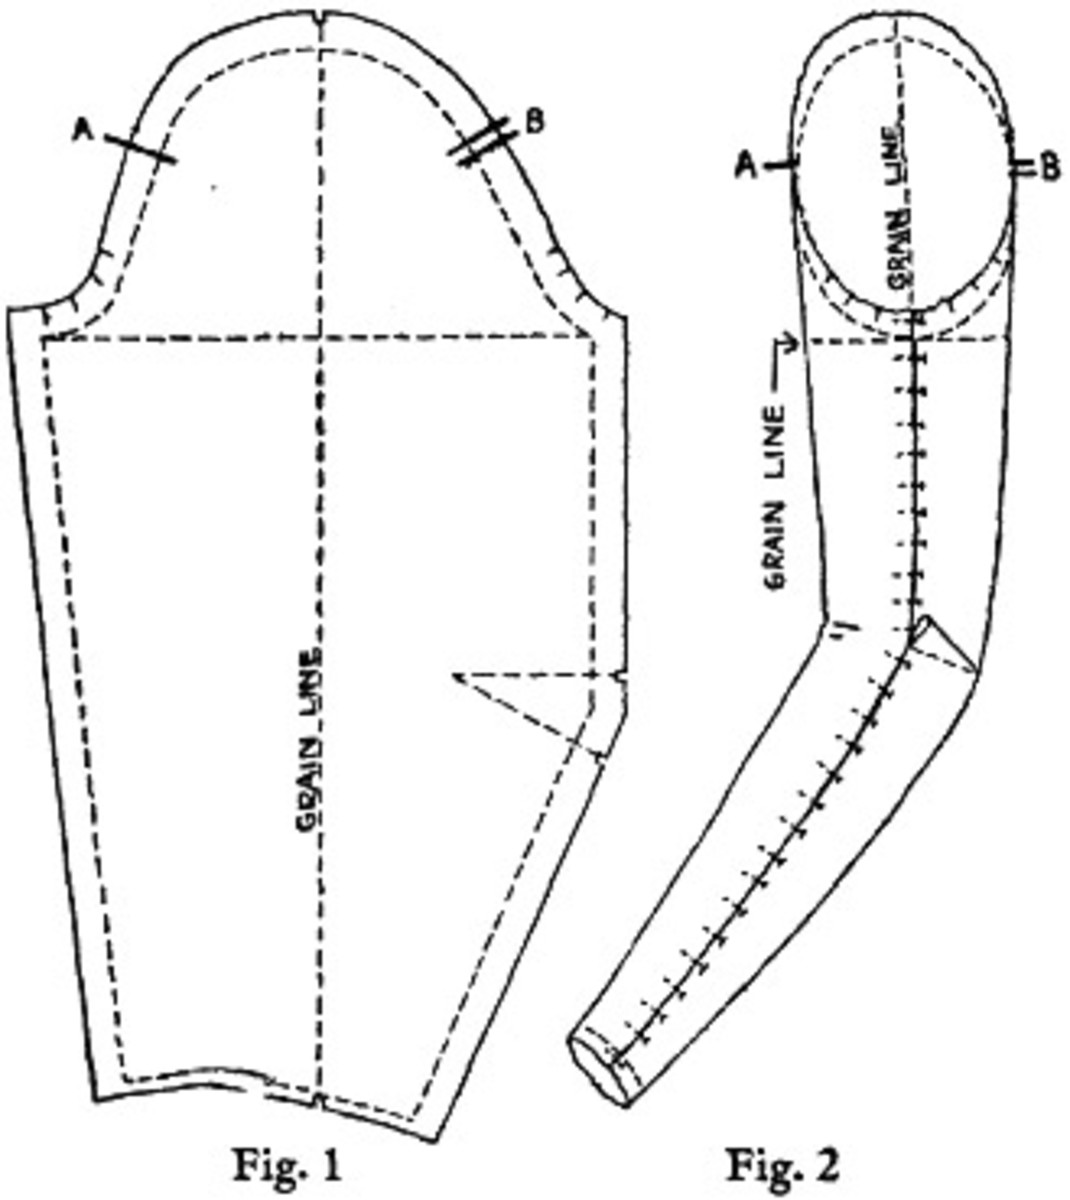 How to Find Unusual Sewing Patterns